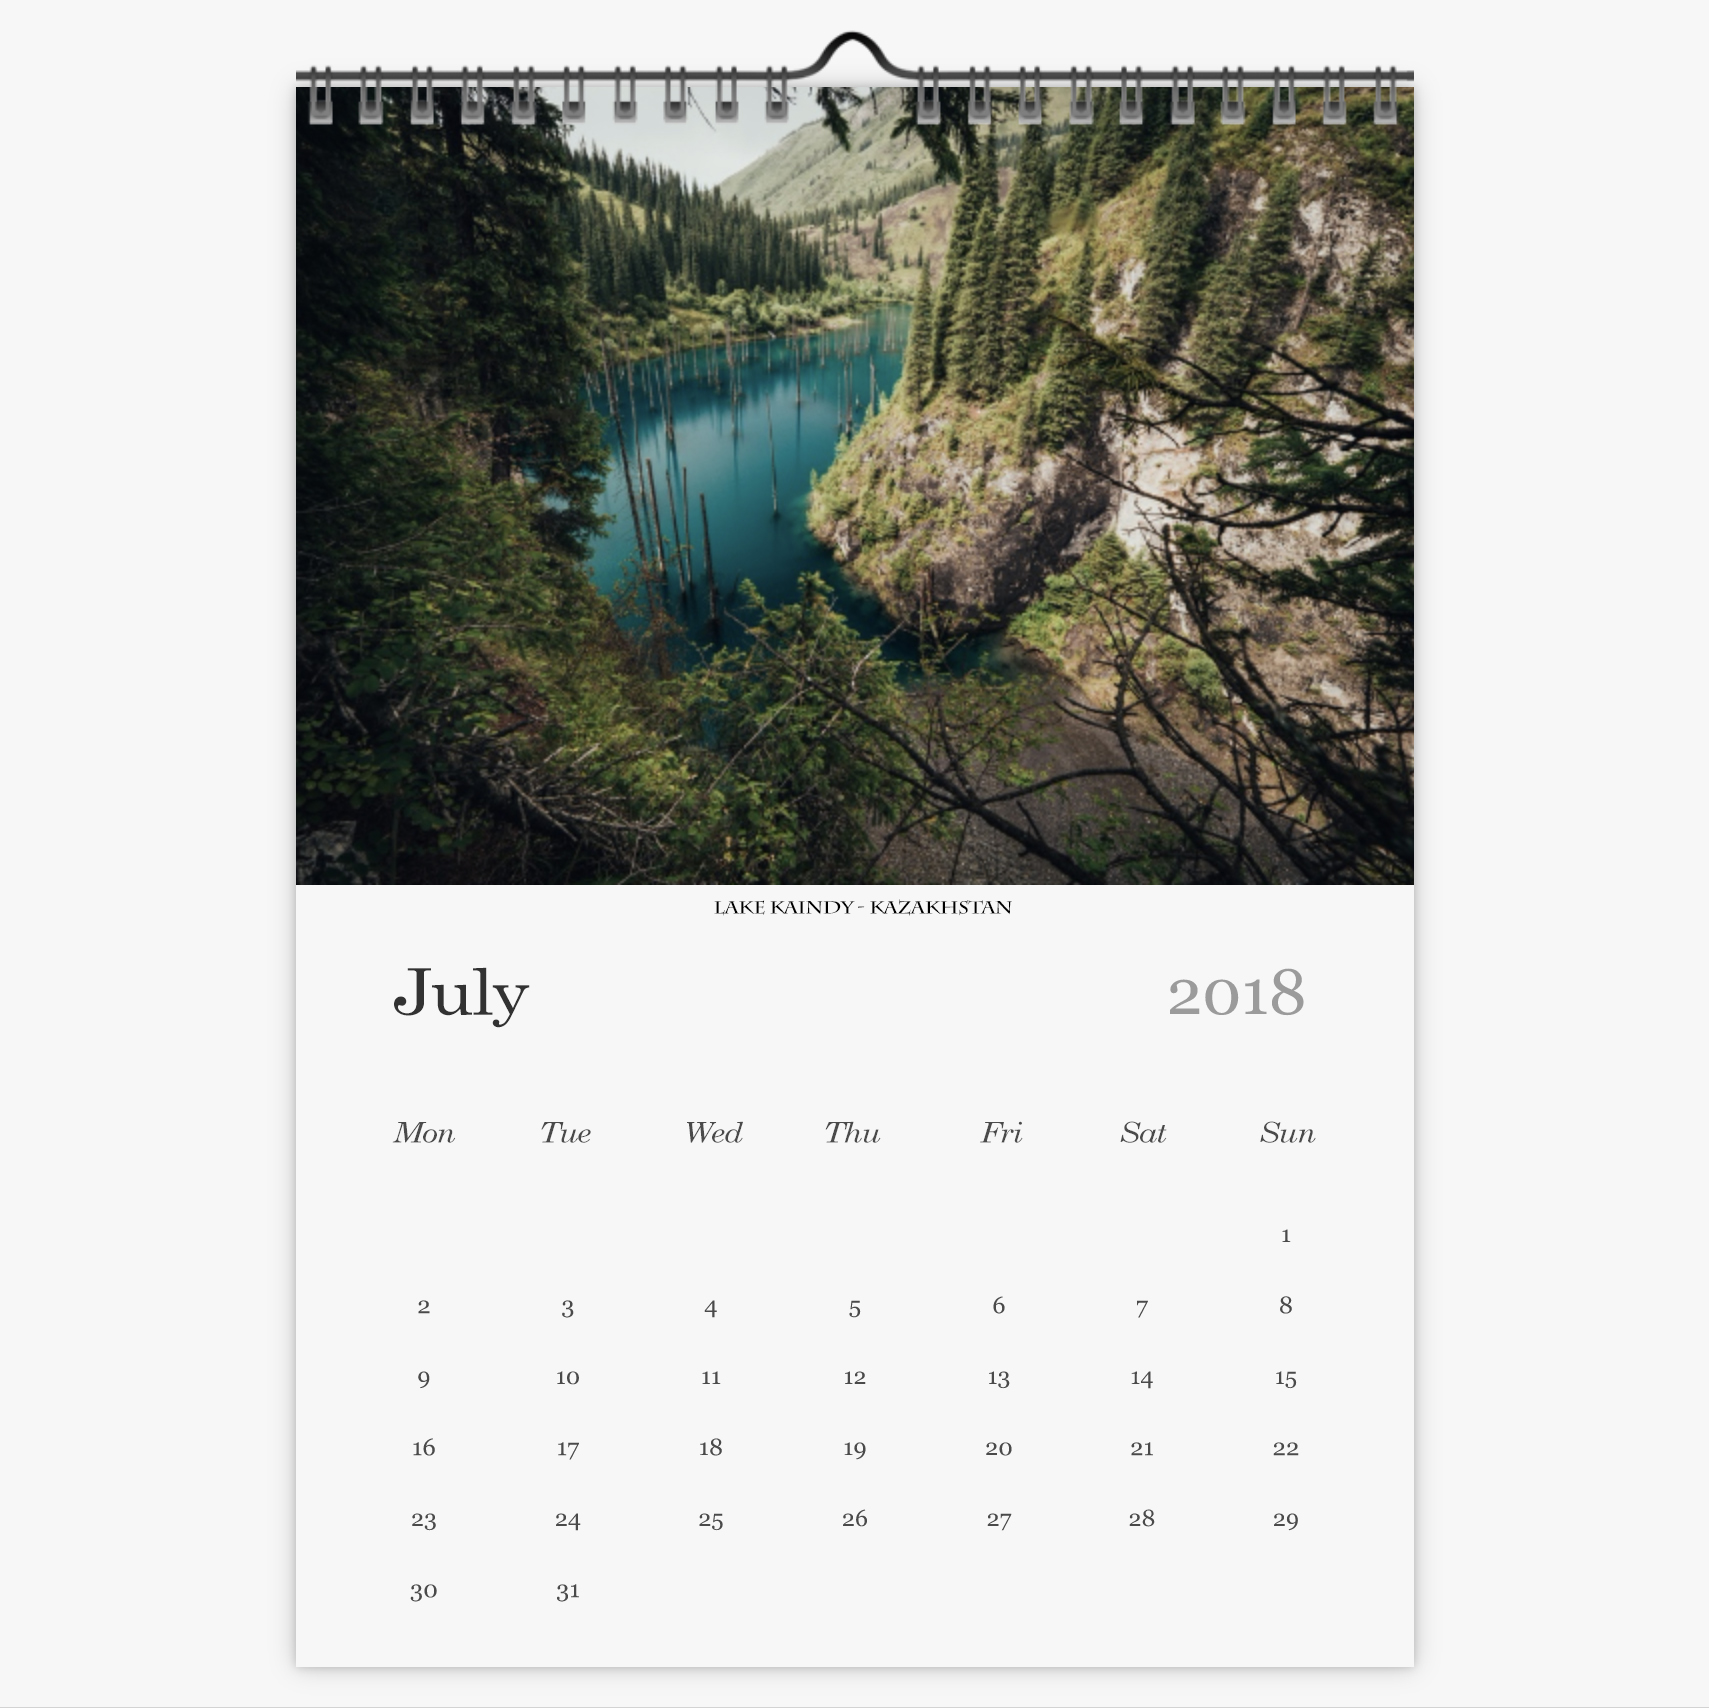 Chris Eyre-Walker Photography 2018 Calendar July